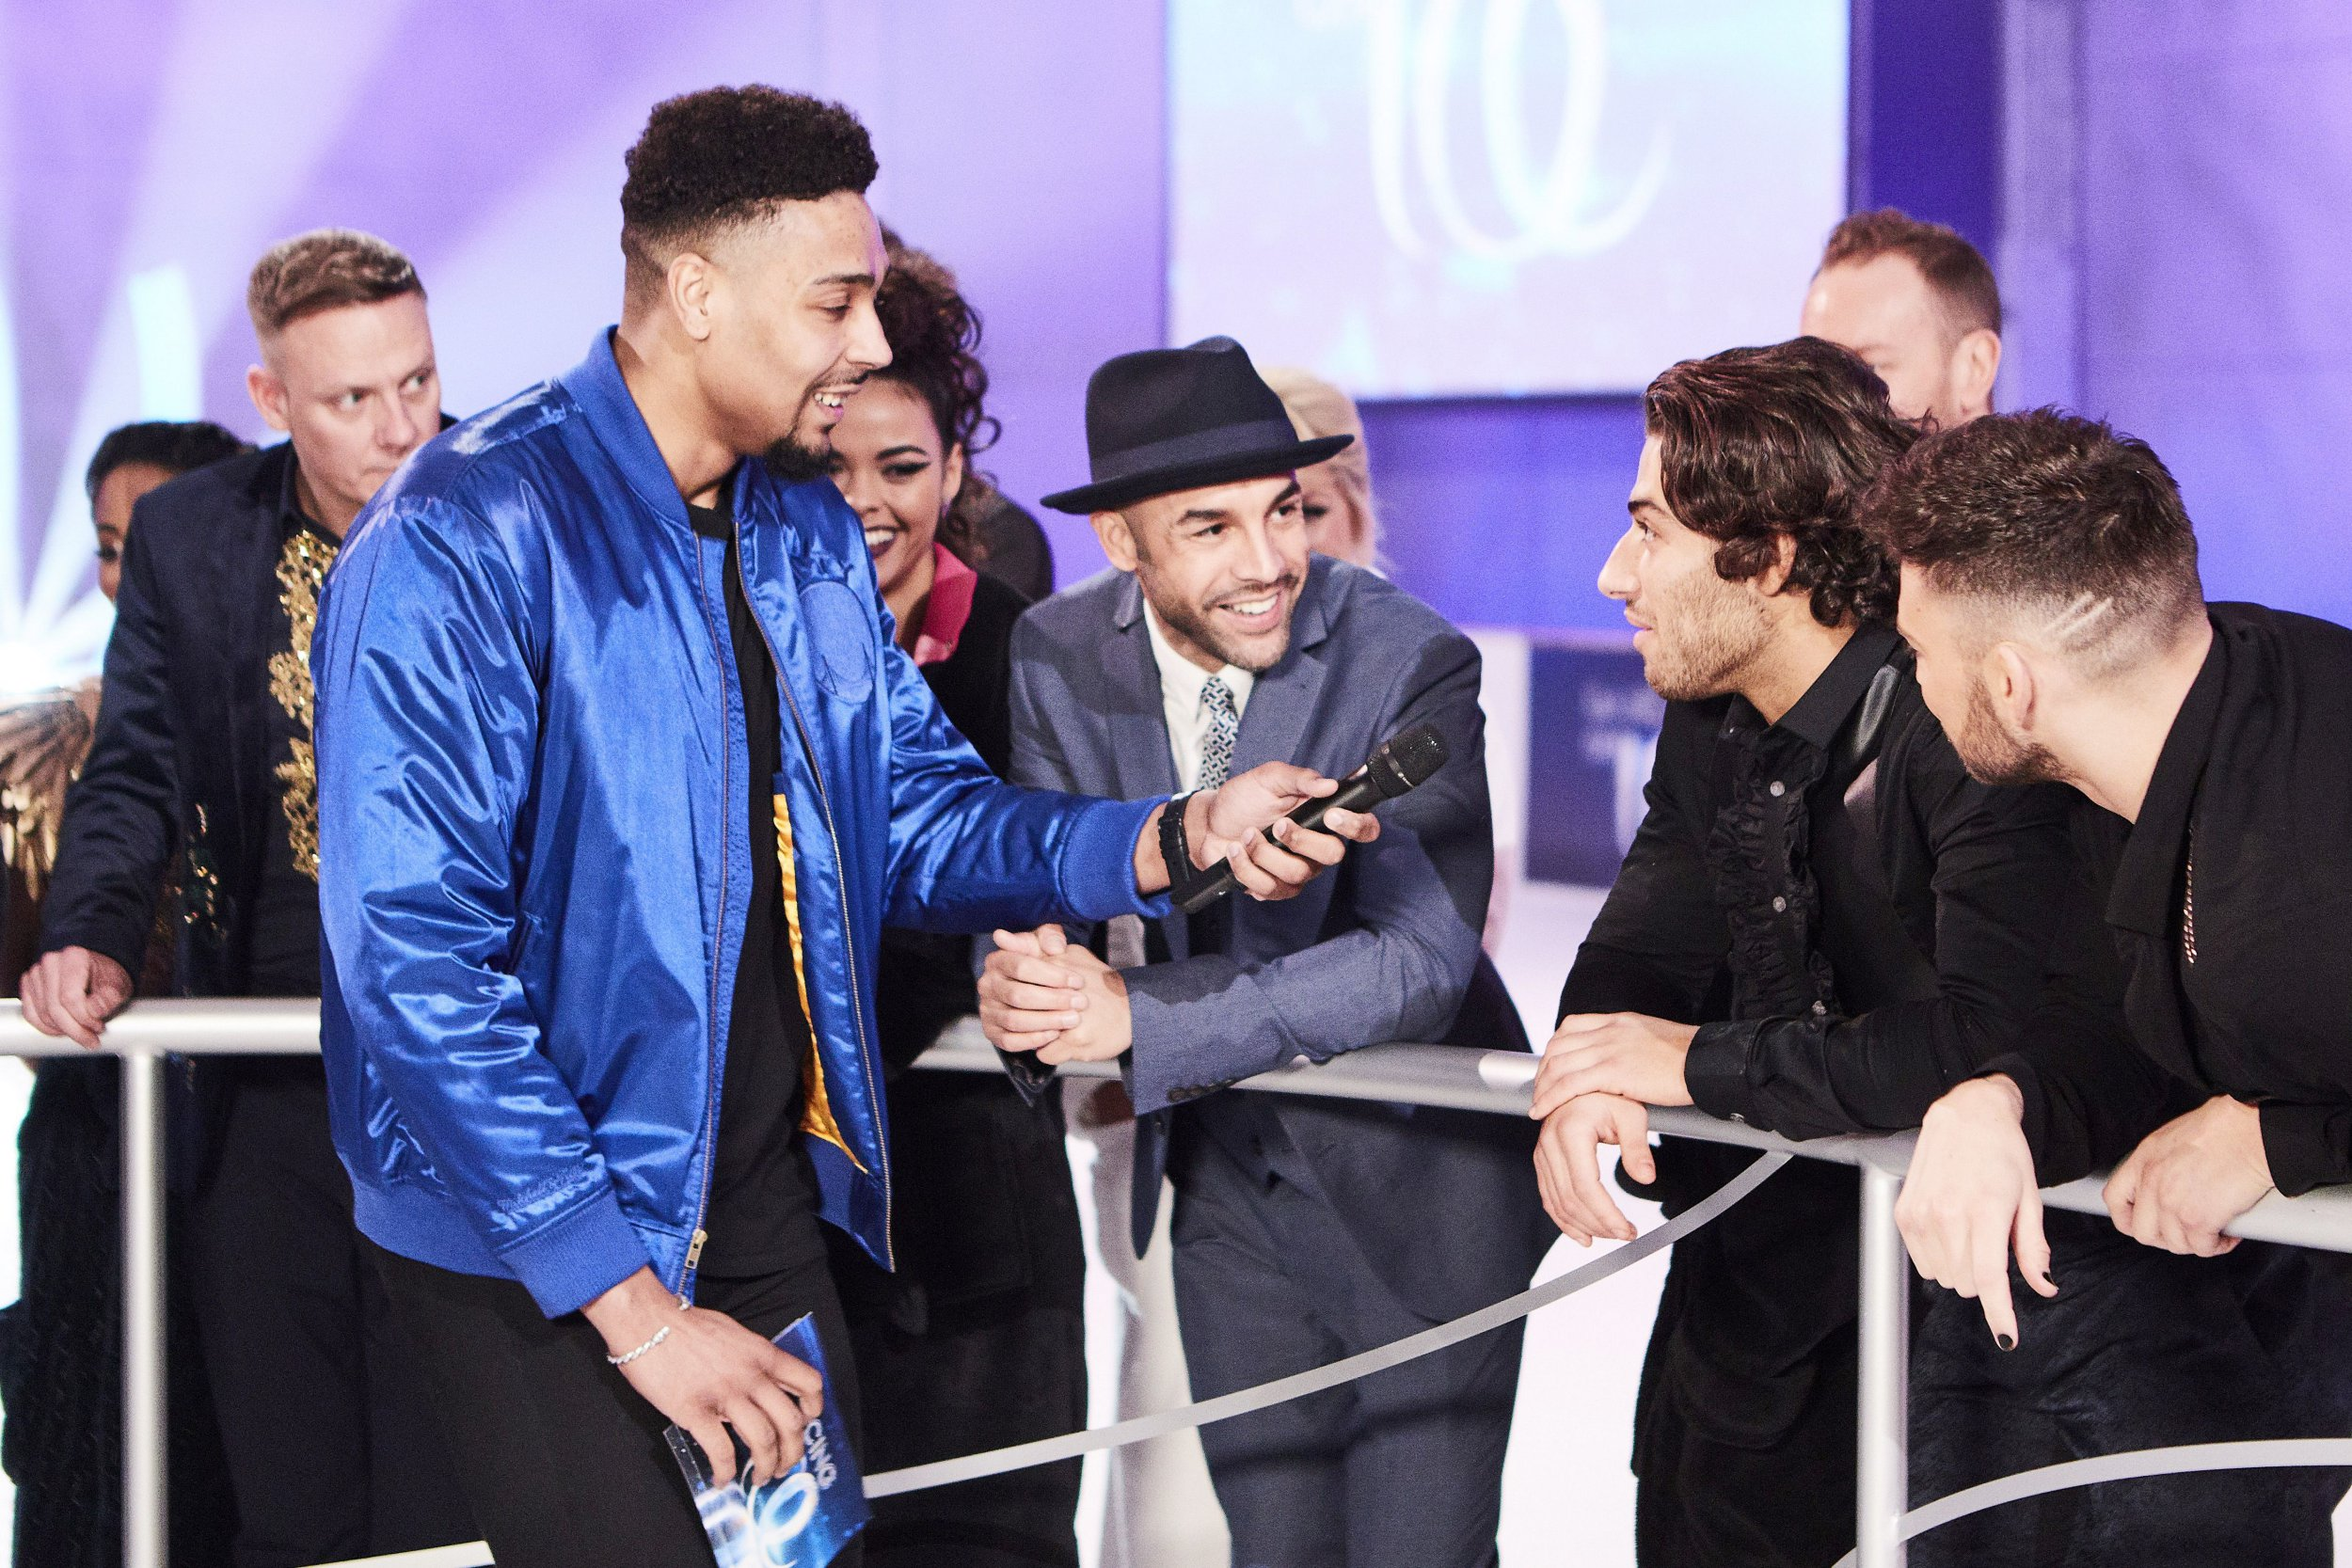 Dancing On Ice's Jordan Banjo quits new series as show faces major shake-up